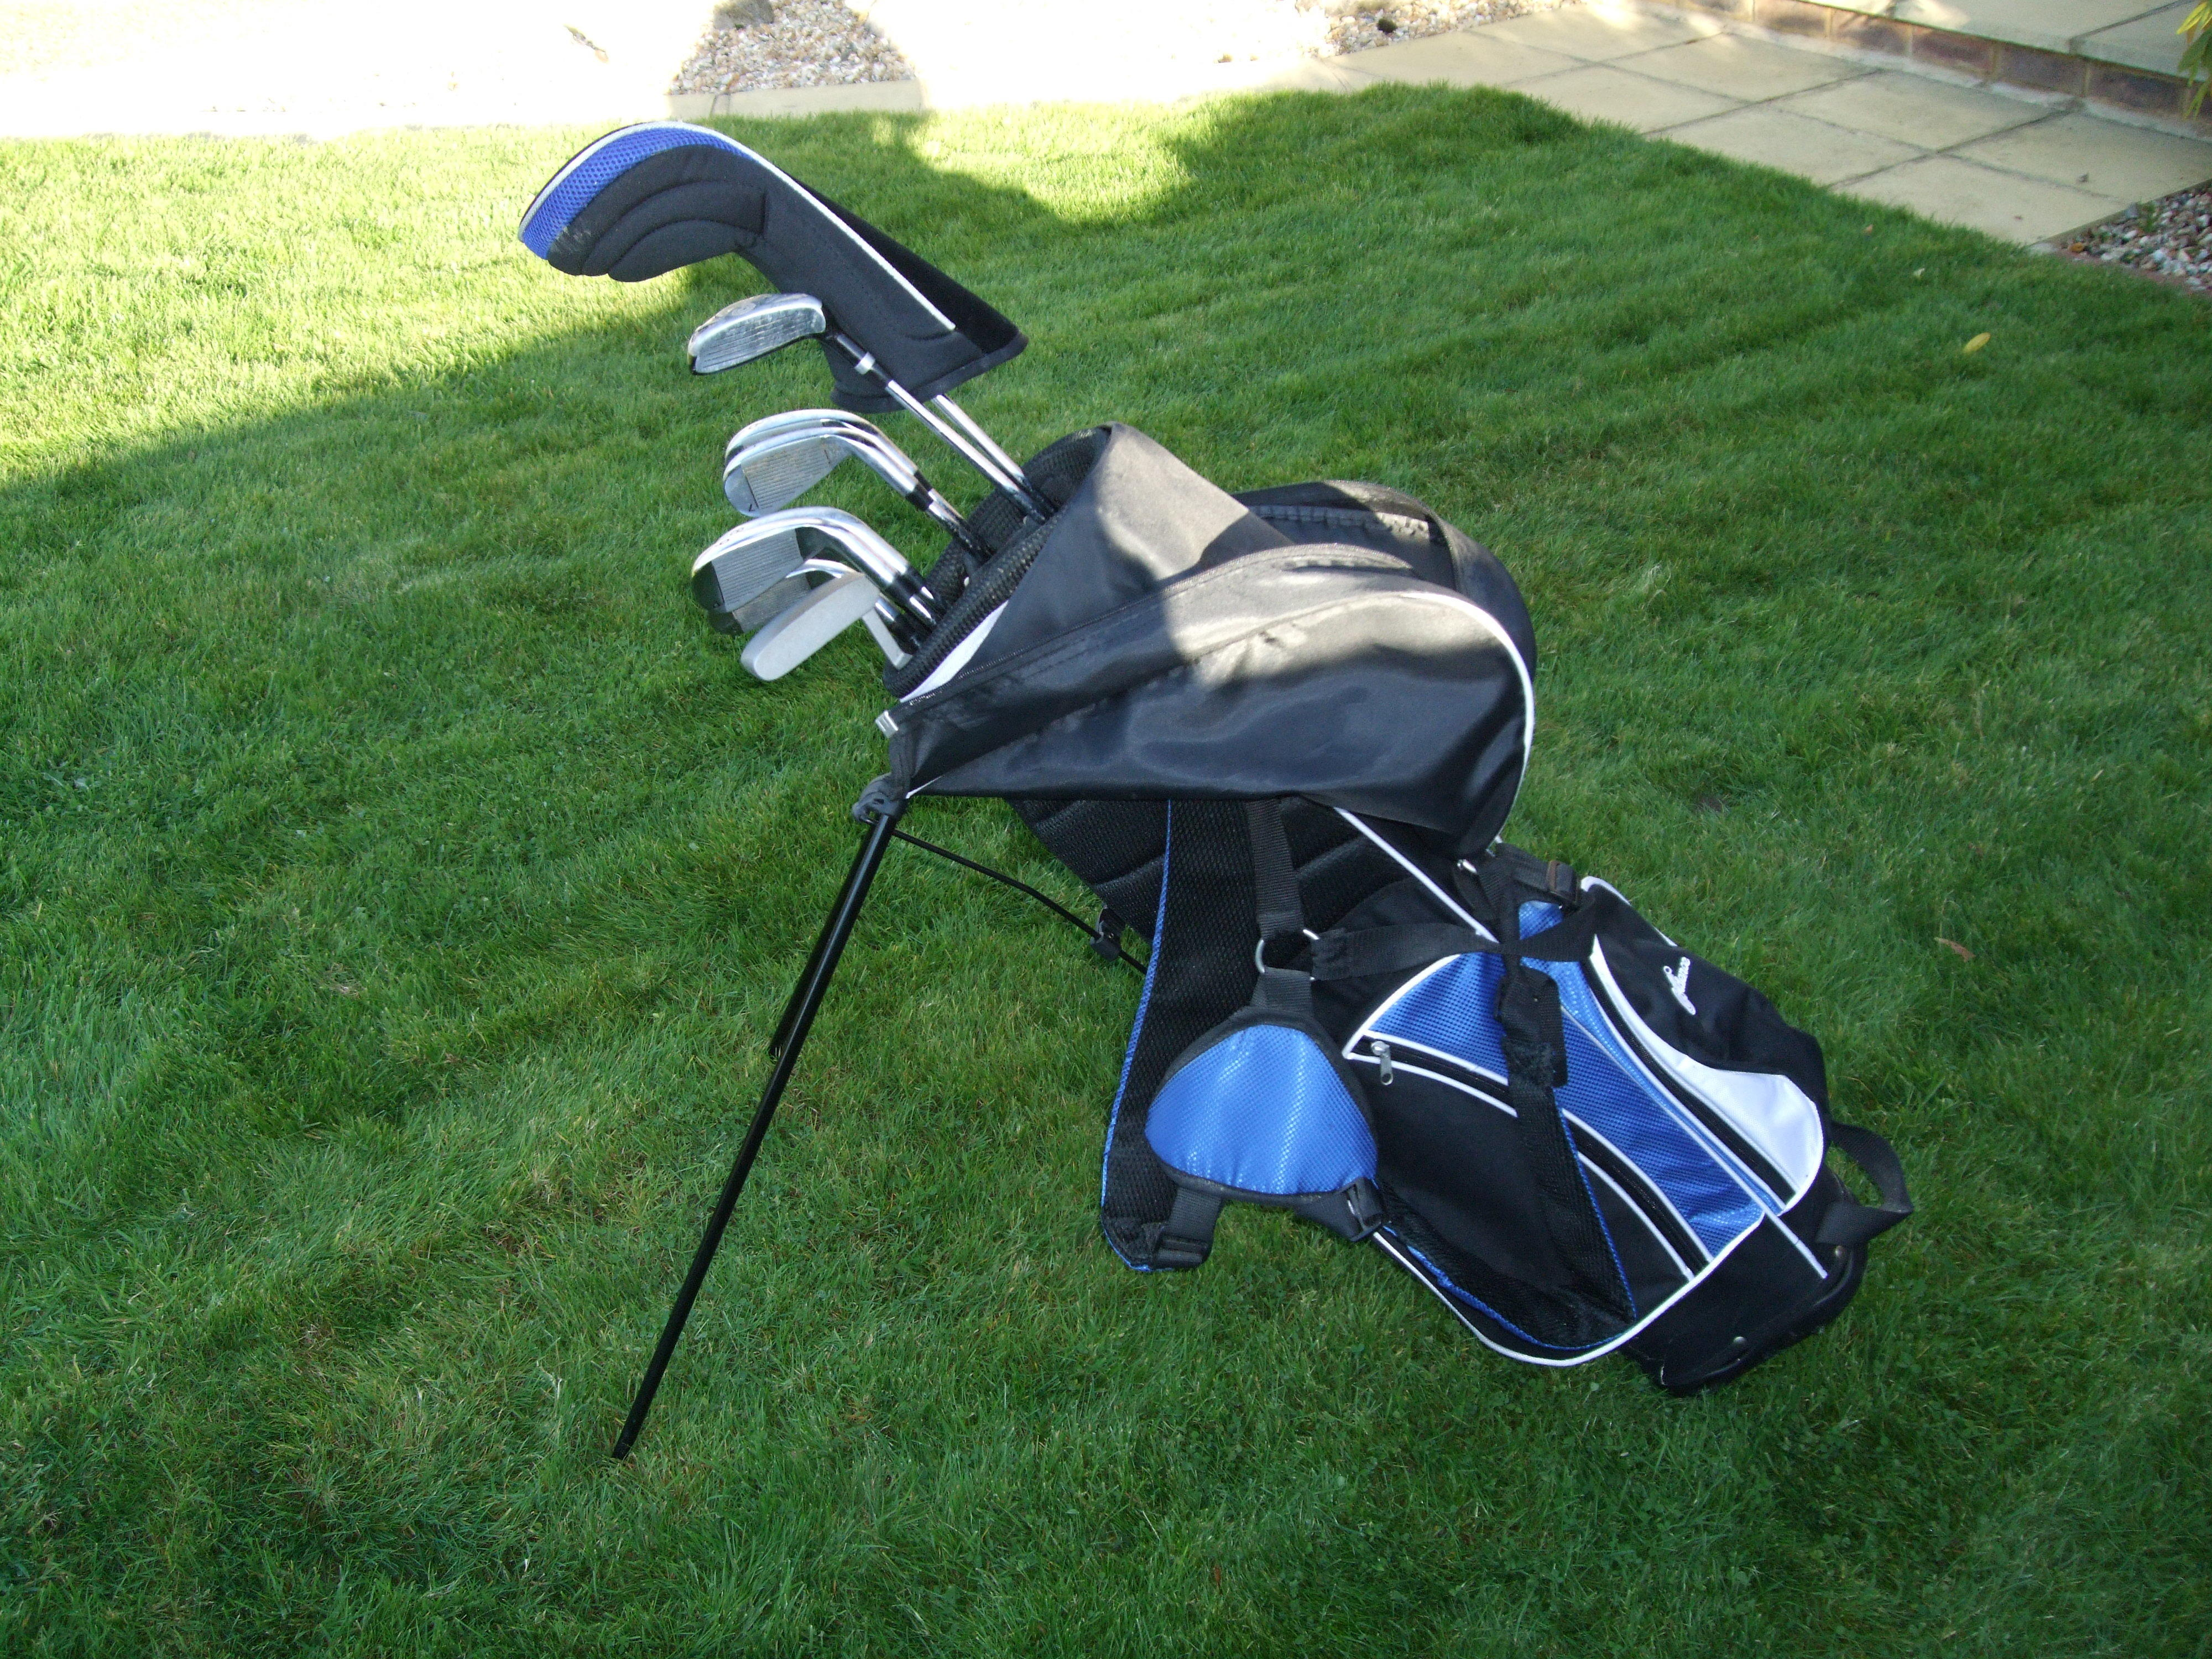 eef59c8715 Left Handed Golf Clubs and Bag in Storrington - Expired | Friday-Ad